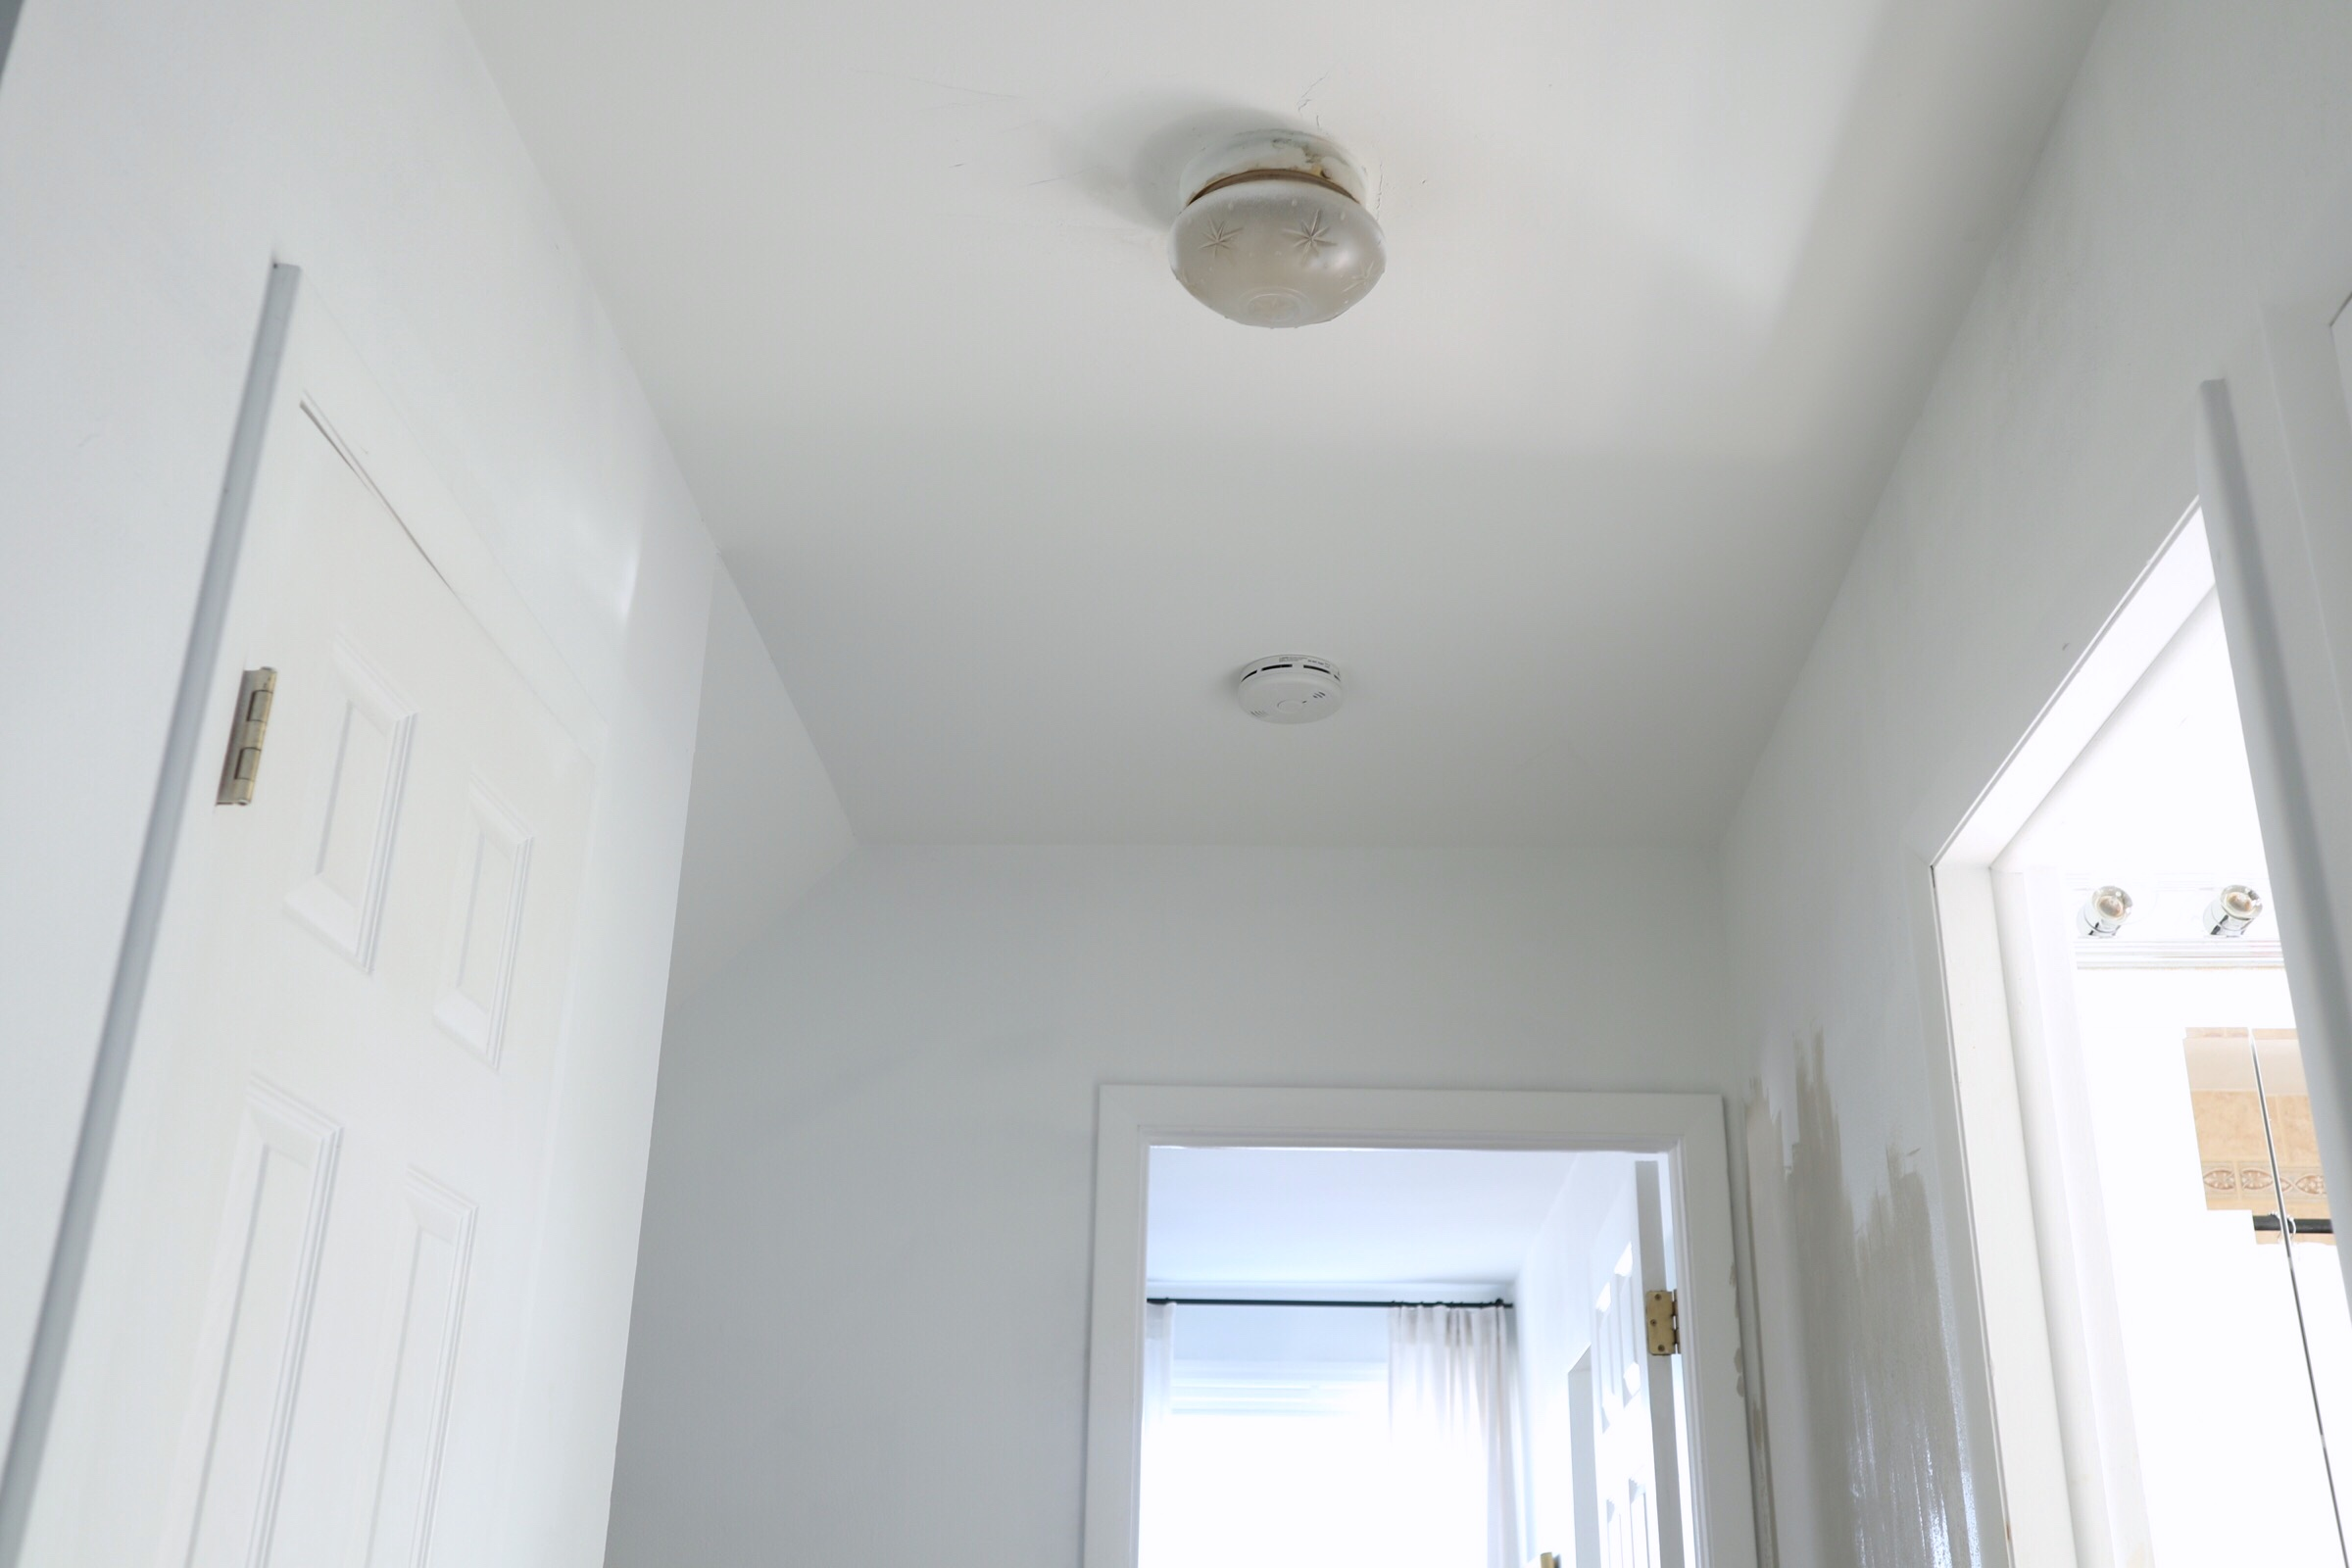 This photo was taken standing at the other end (near Nathan's room) to show the tiny little light fixture.